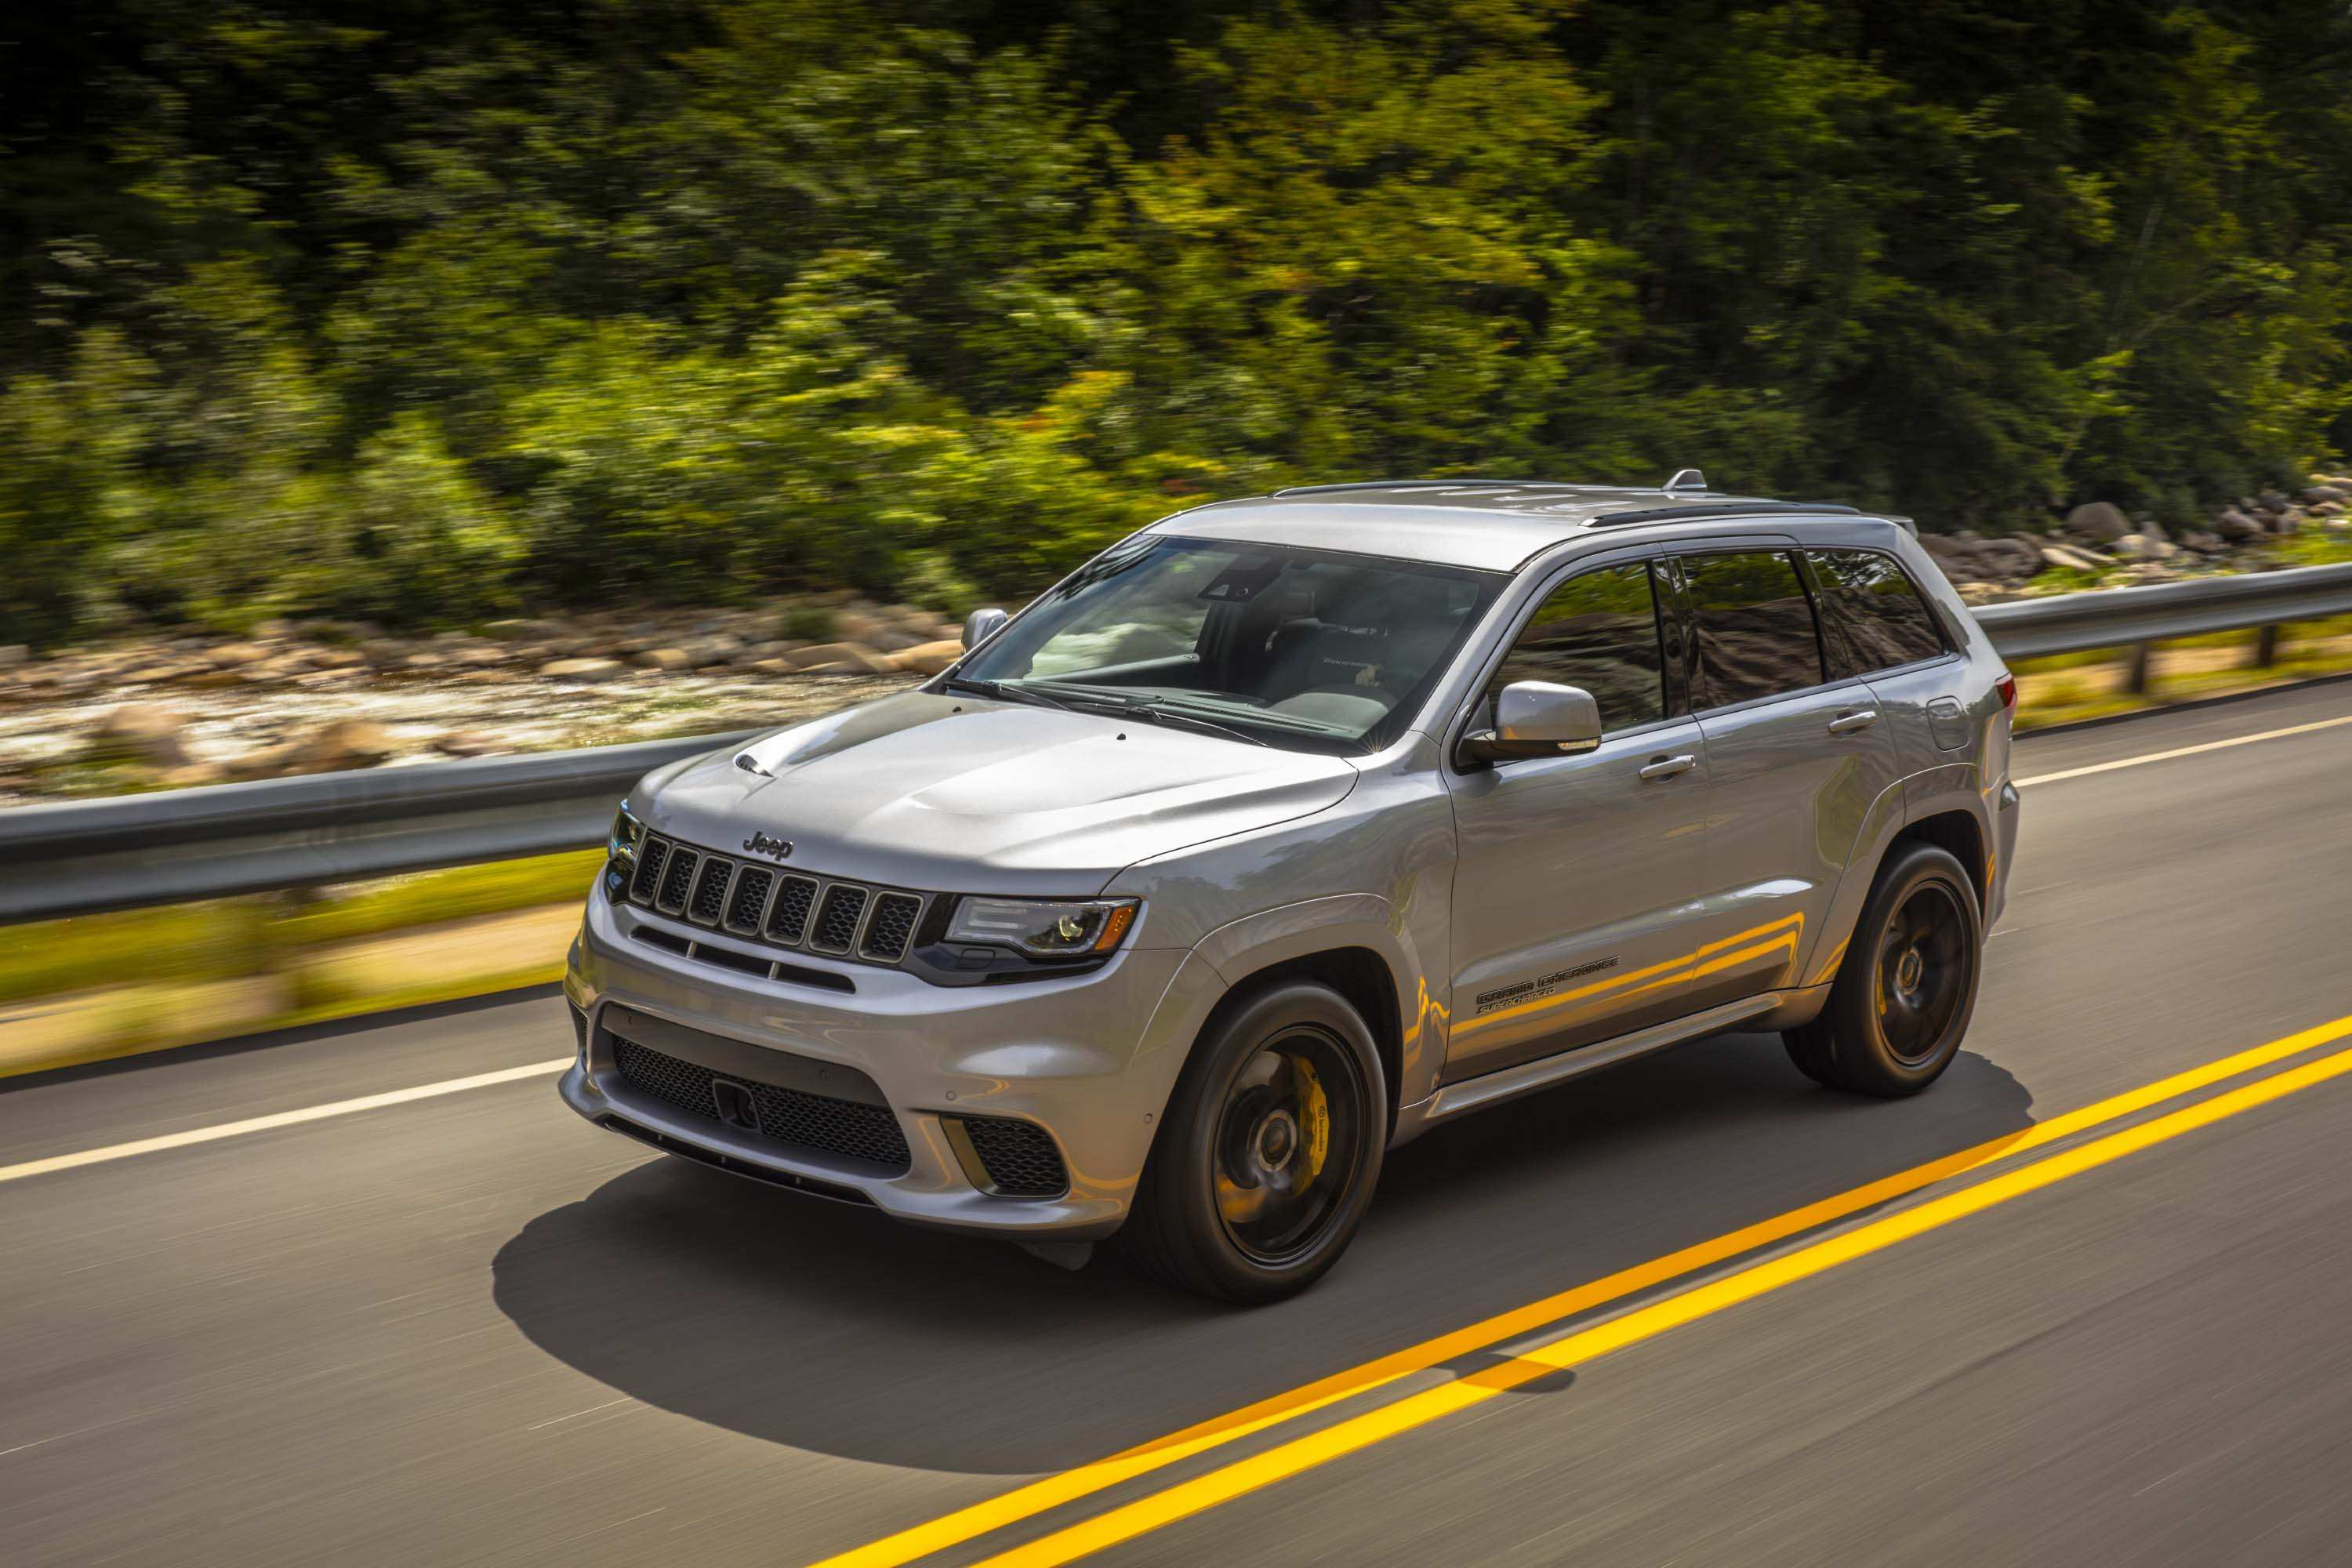 75 The Best 2020 Jeep Grand Cherokee Spy Photos Release Date And Concept